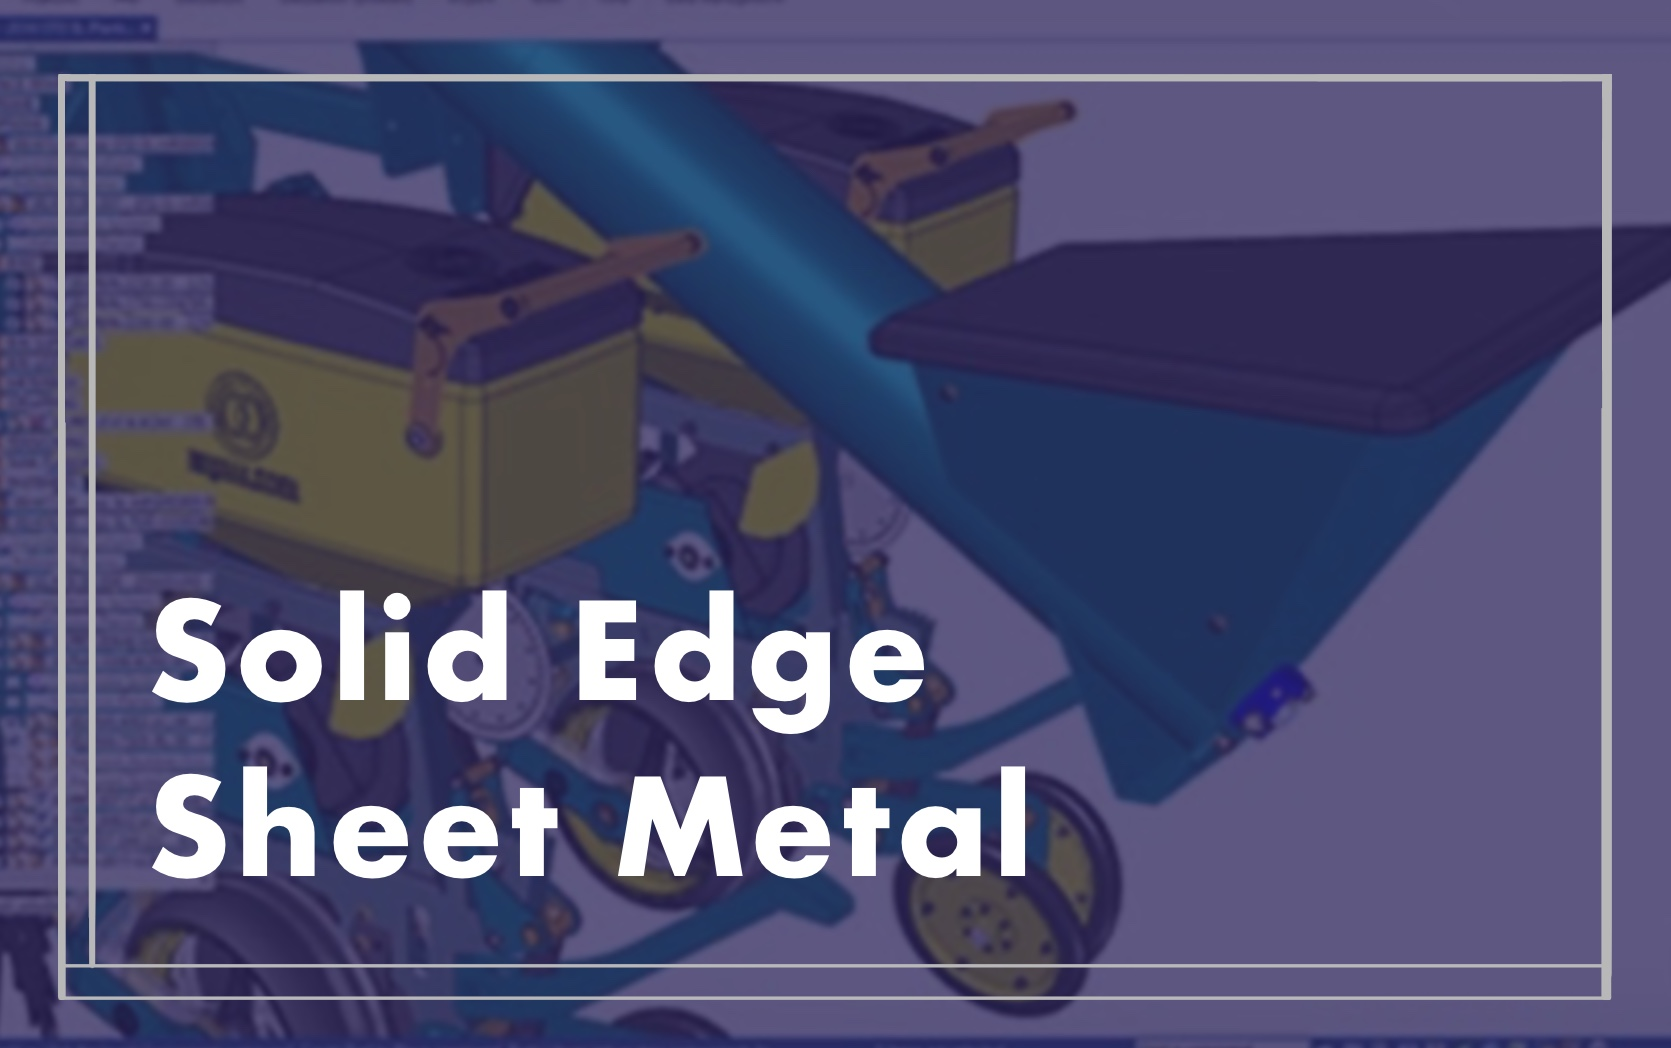 Solid Edge Sheet Metal